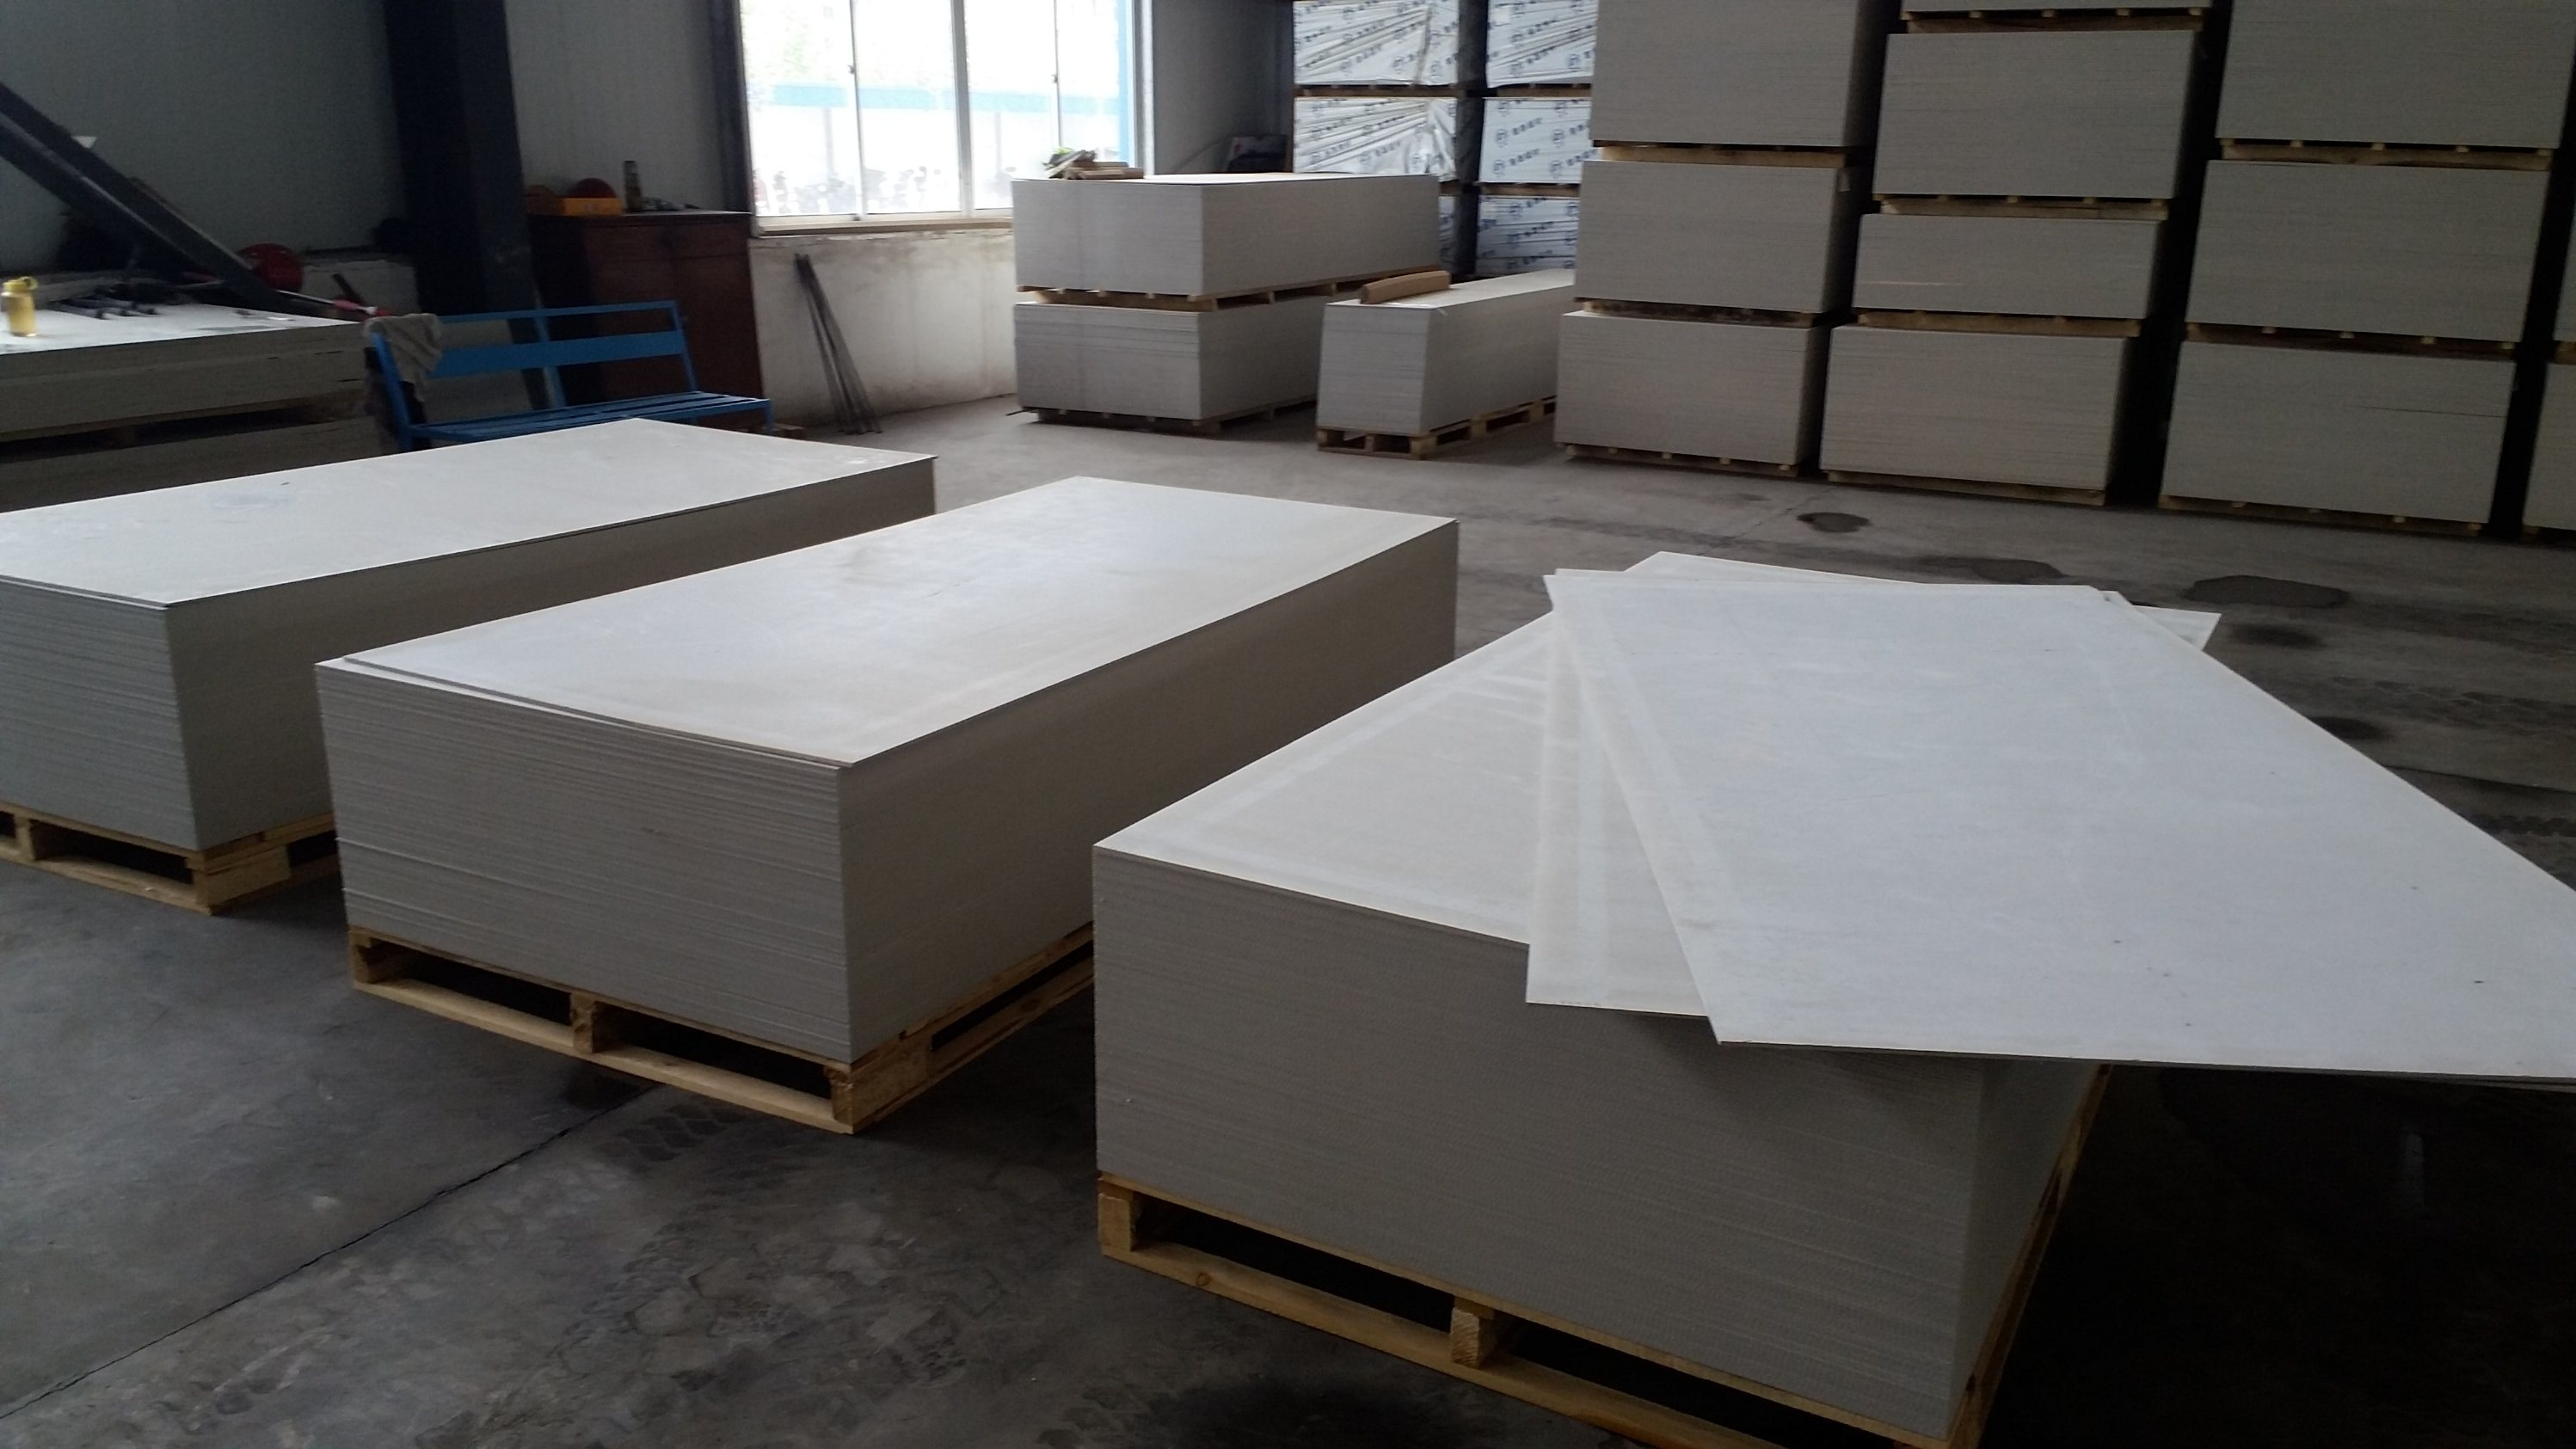 China Cellulose Fiber Reinforced Calcium Silicate Board Fiber Cement Sheet Non Asbestos Light Weight High Density Fireproof China Eps Sandwich Panel Lgs Prefab Houses Calcium Silicate Panel Cladding